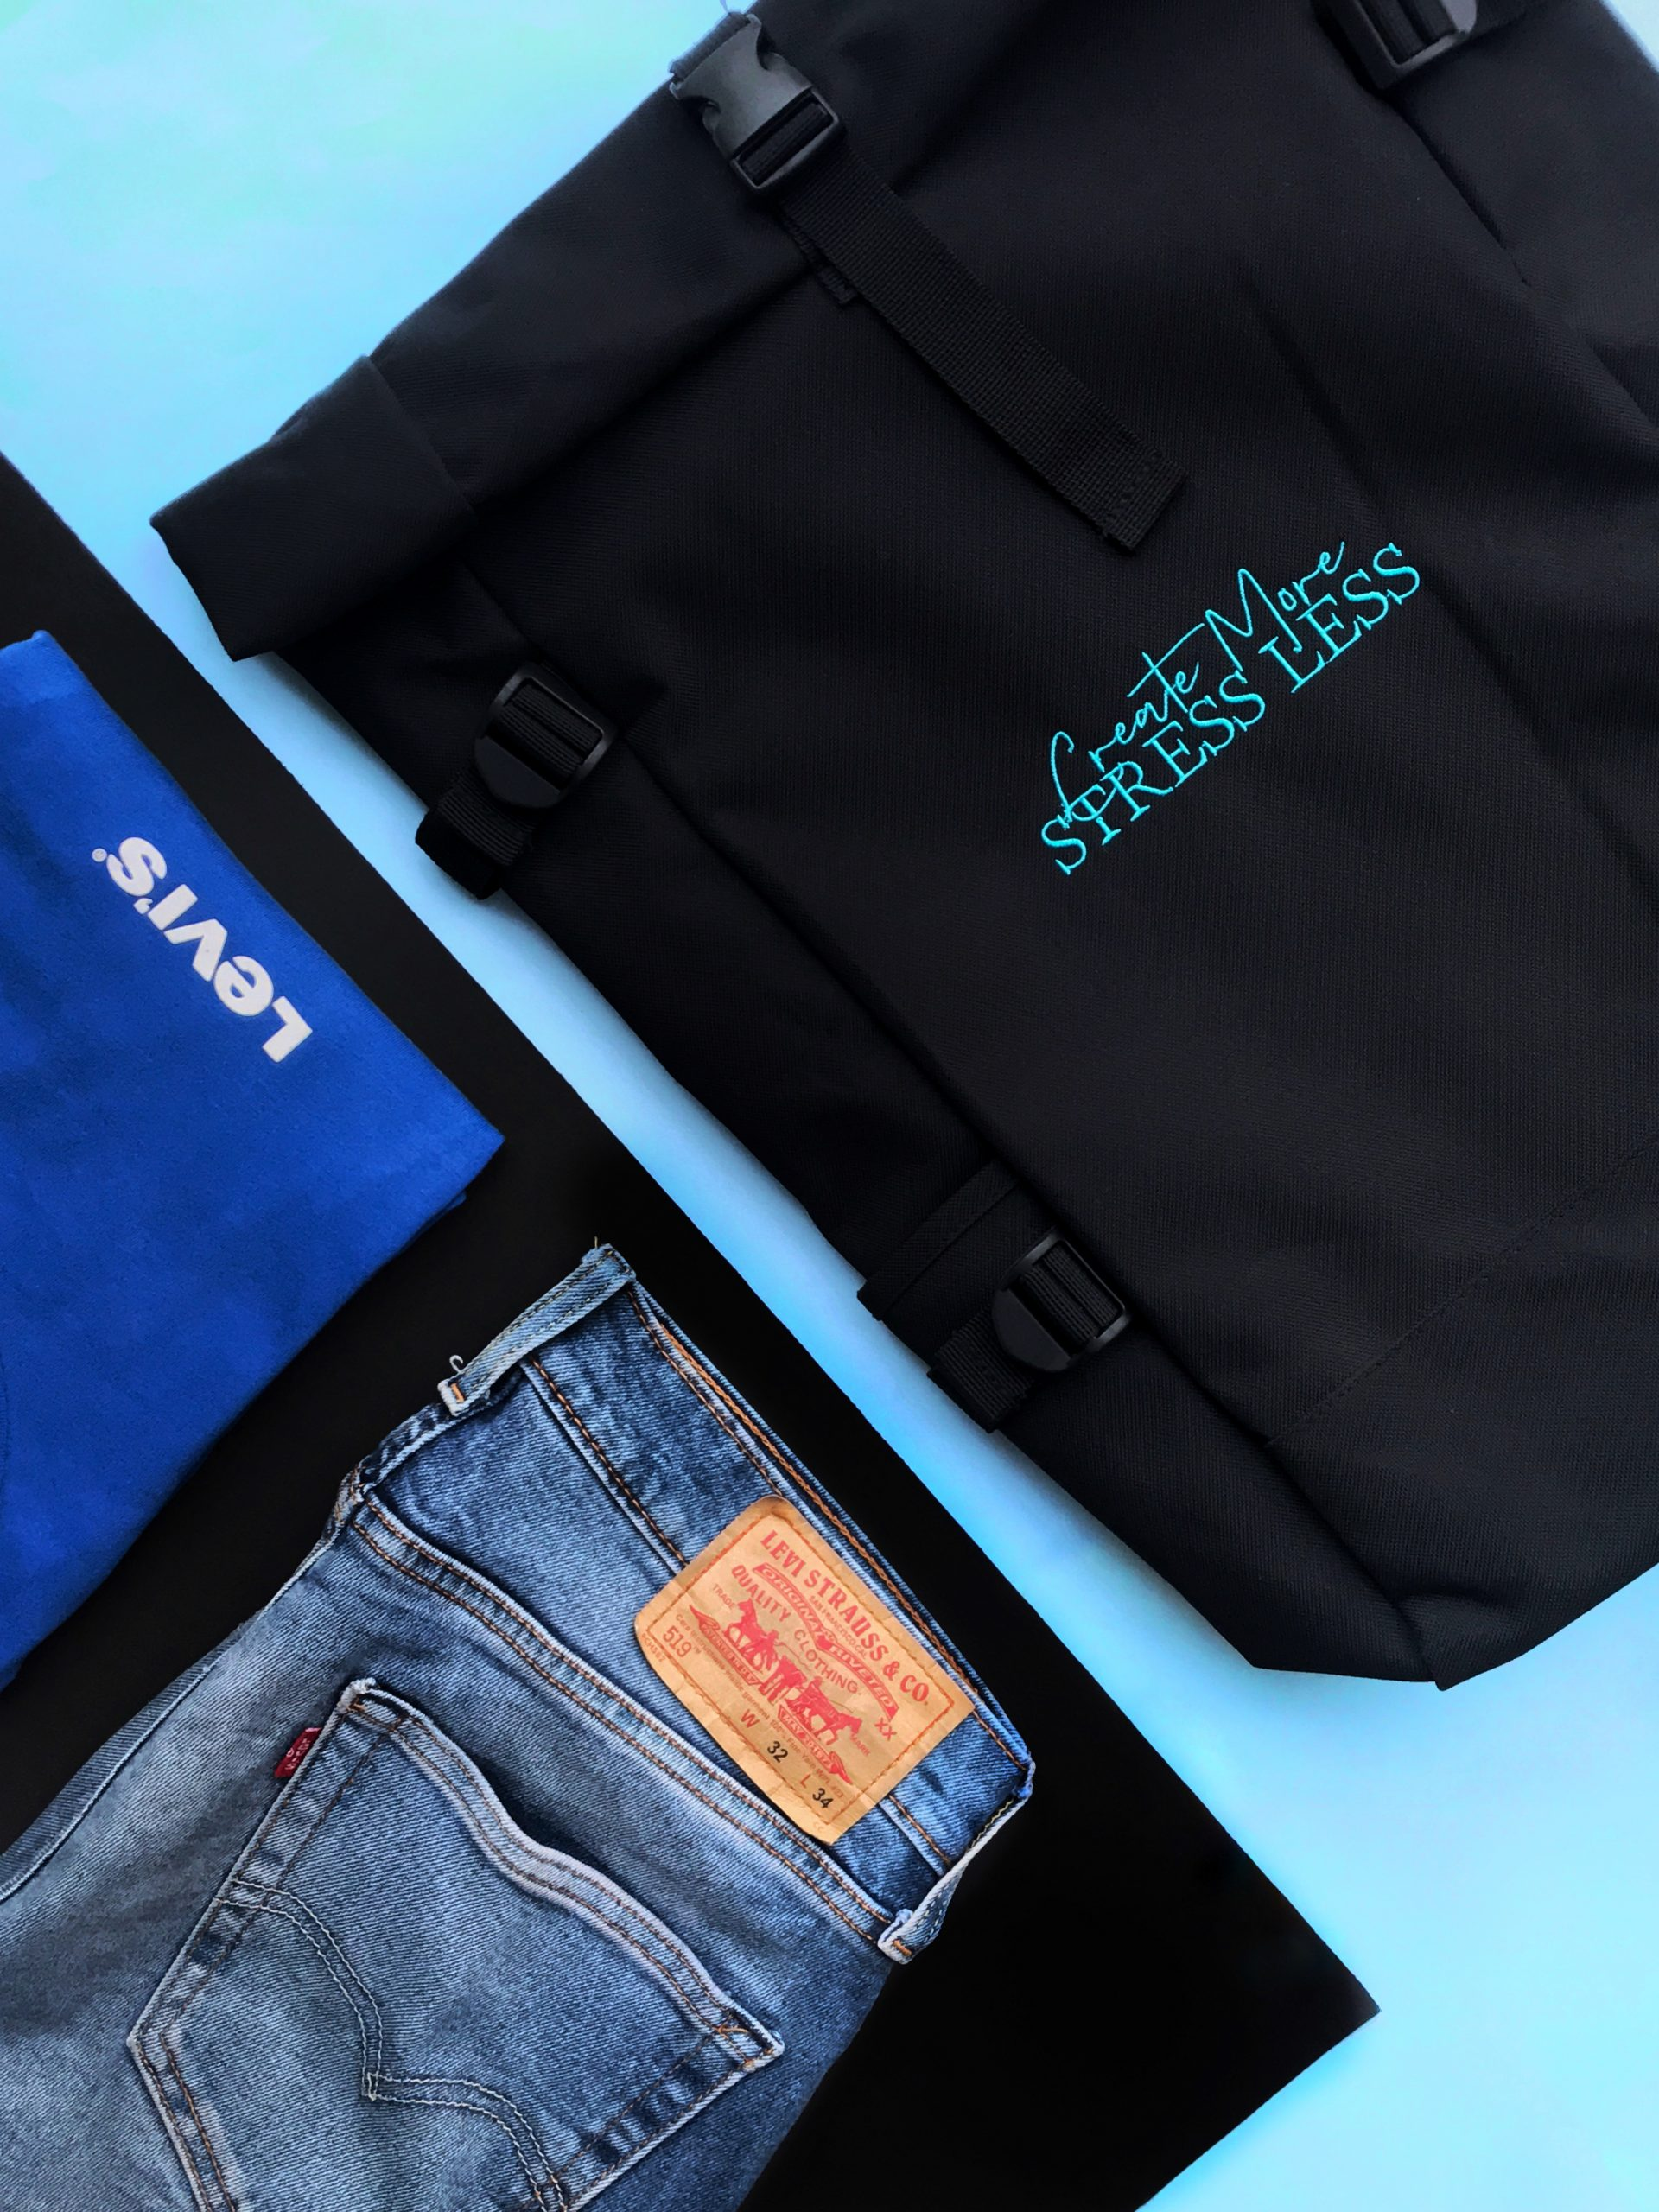 apparel and backpack